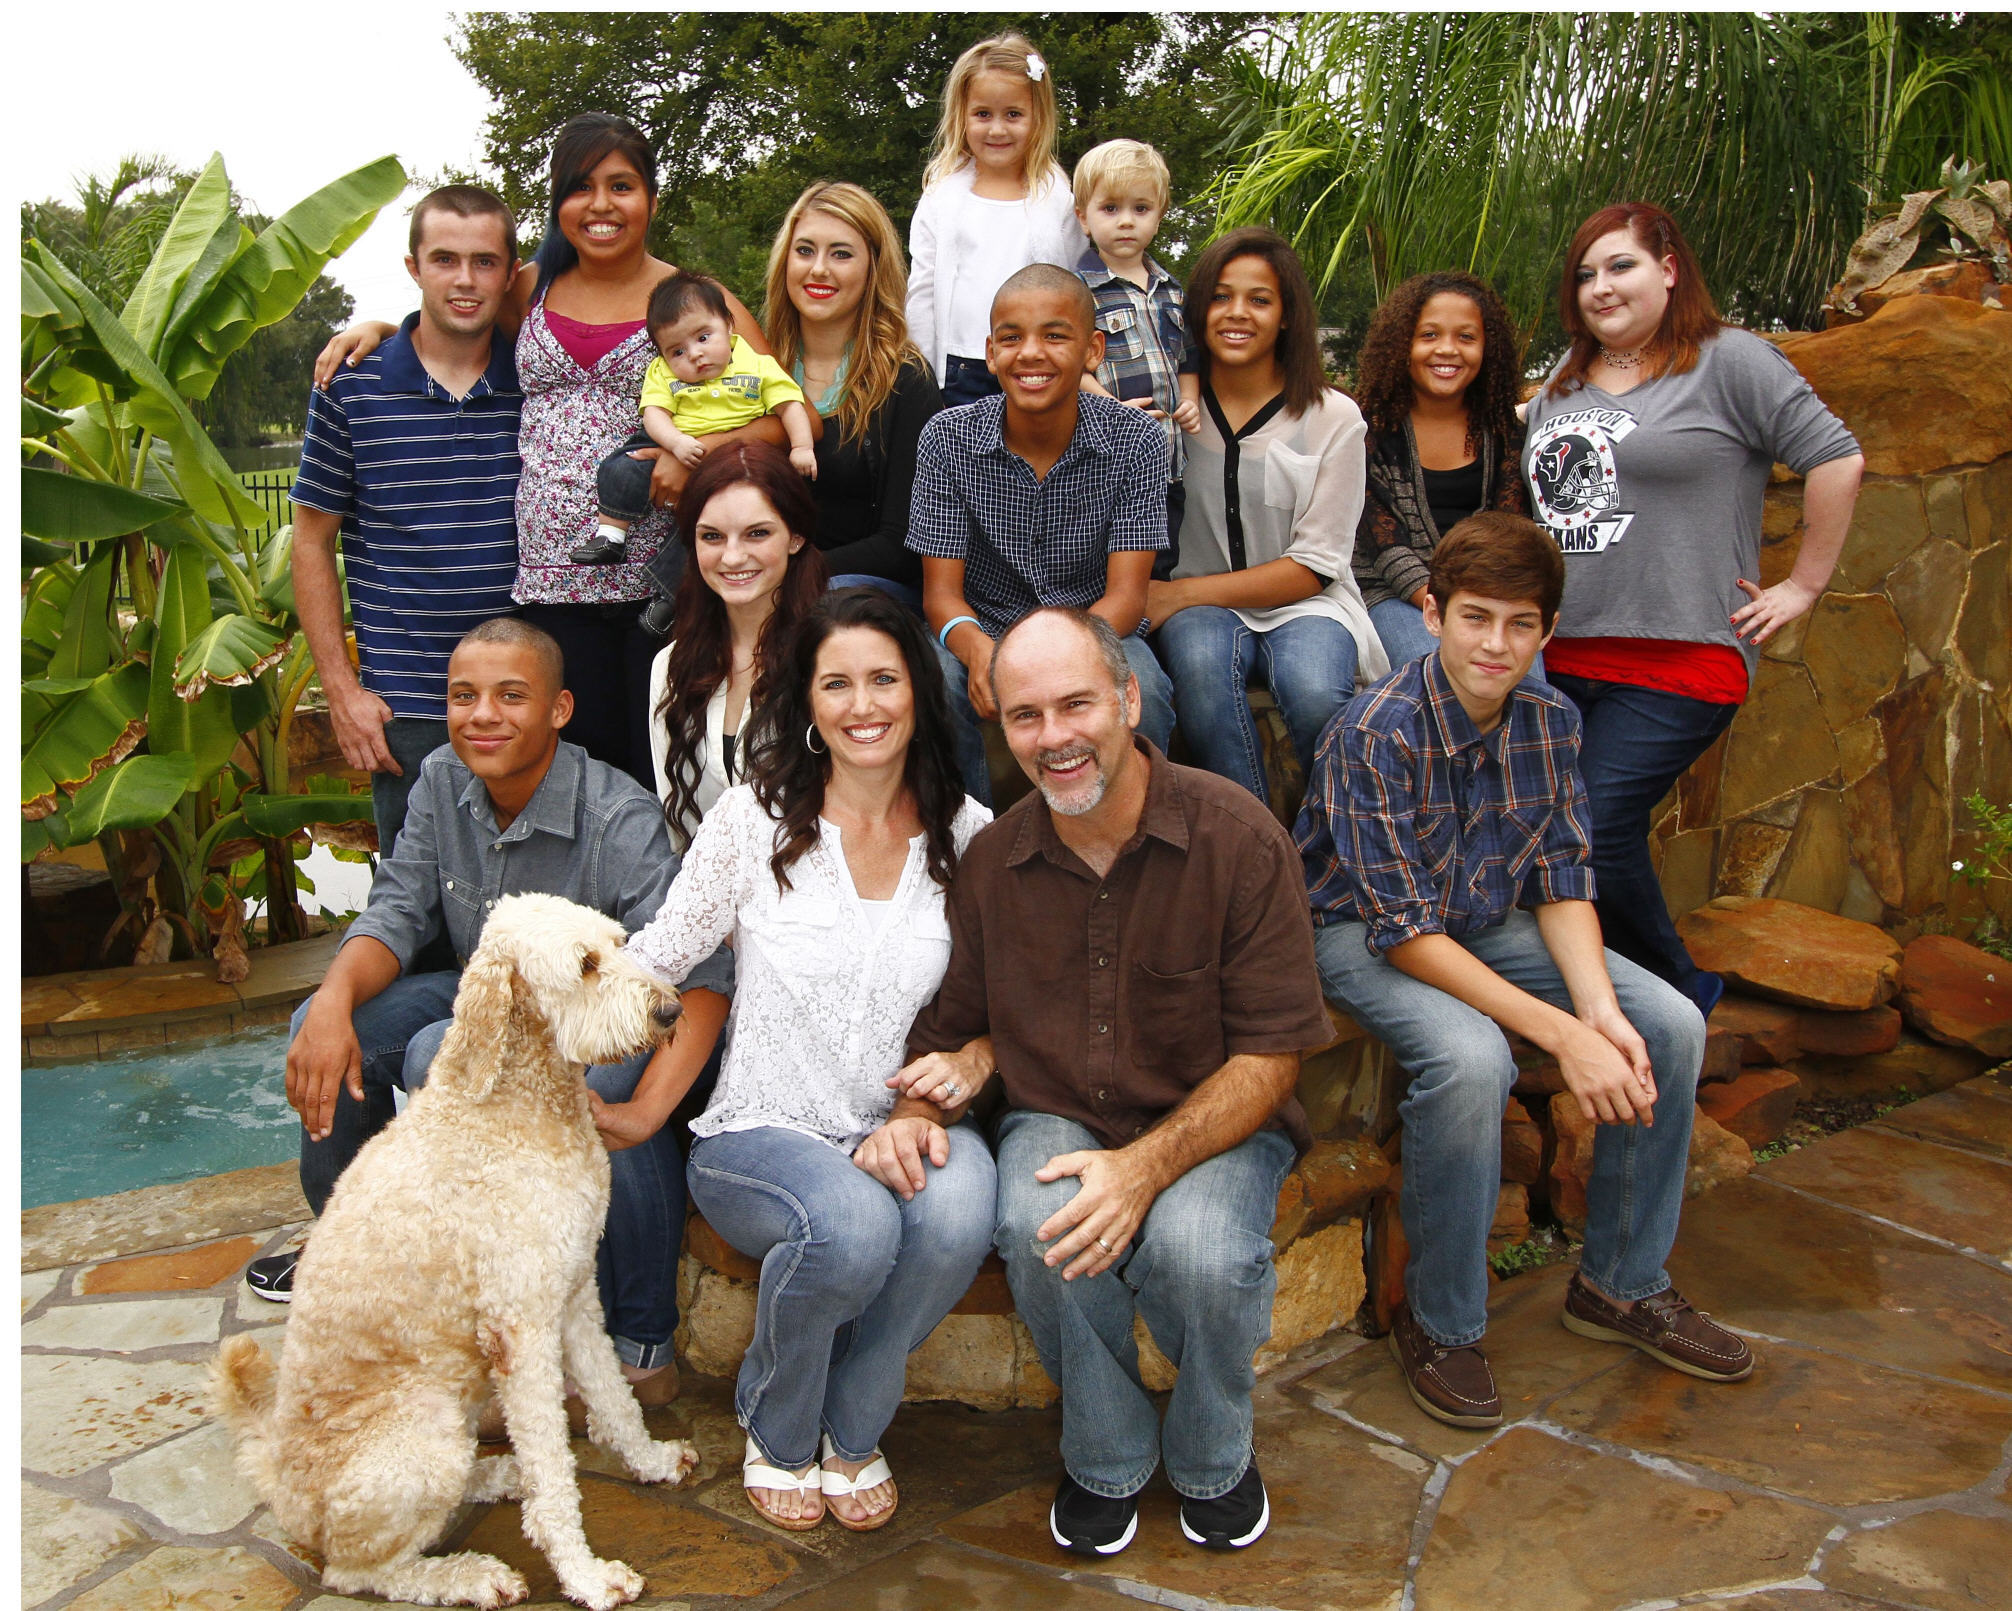 Incredible Blended And Adopted Family Of 11 Children